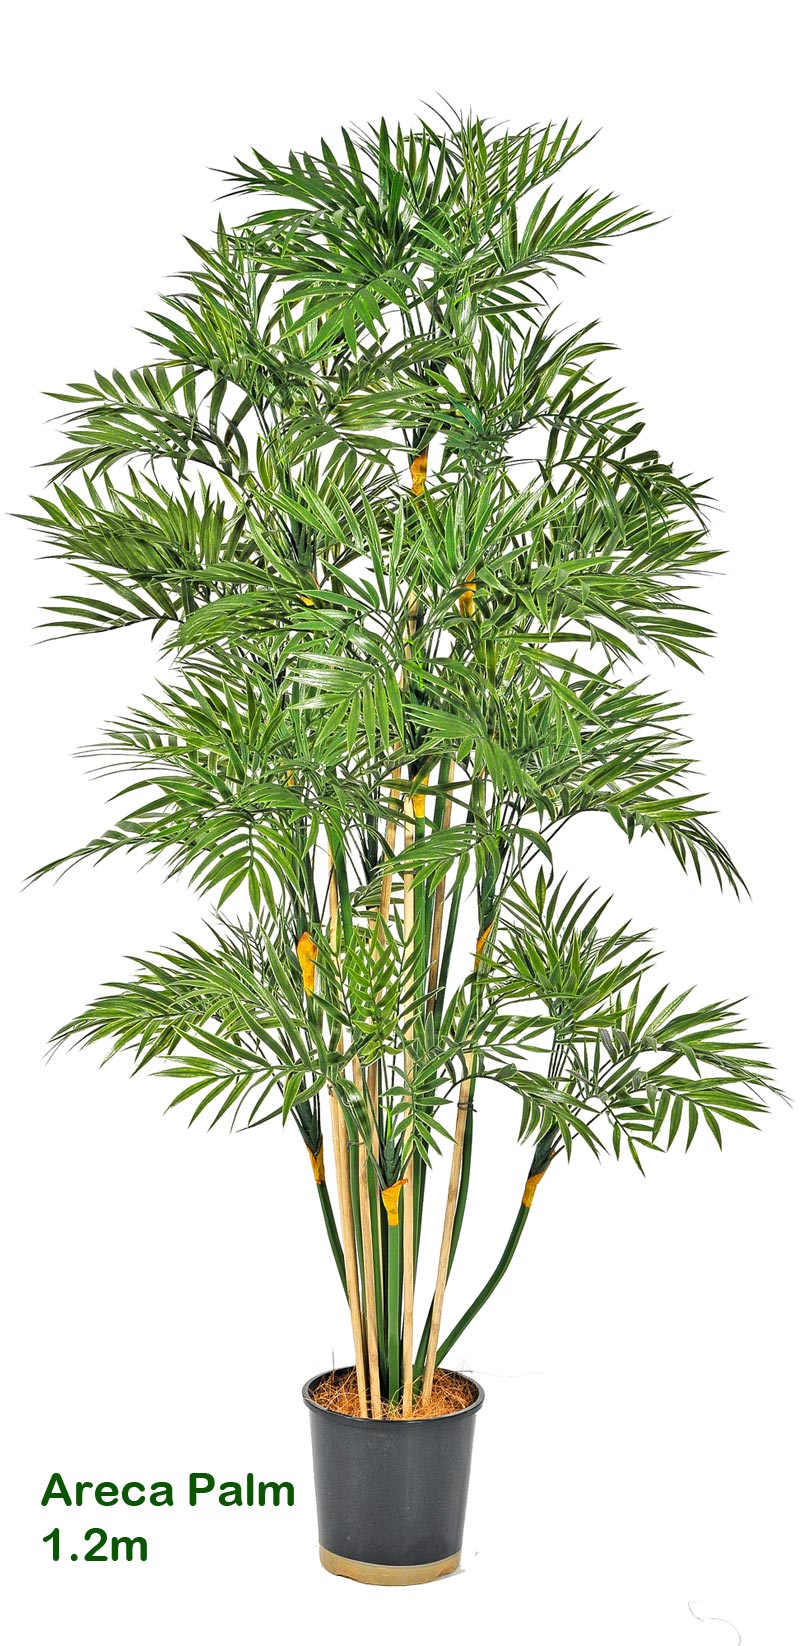 Articial Plants - Areca Palm 1.2M